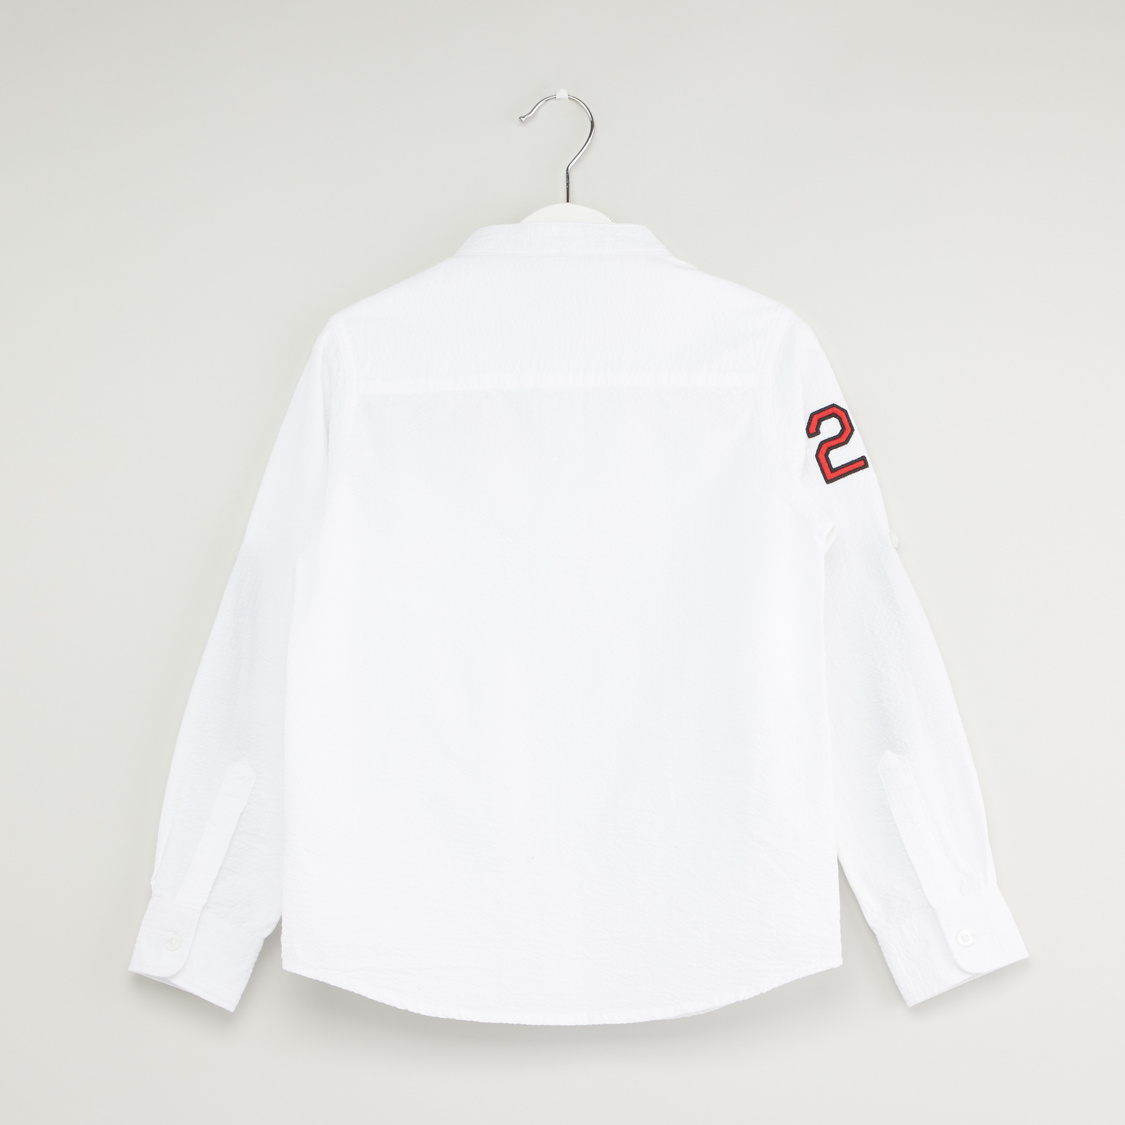 Typographic Print Shirt with Long Sleeves and Pocket Detail